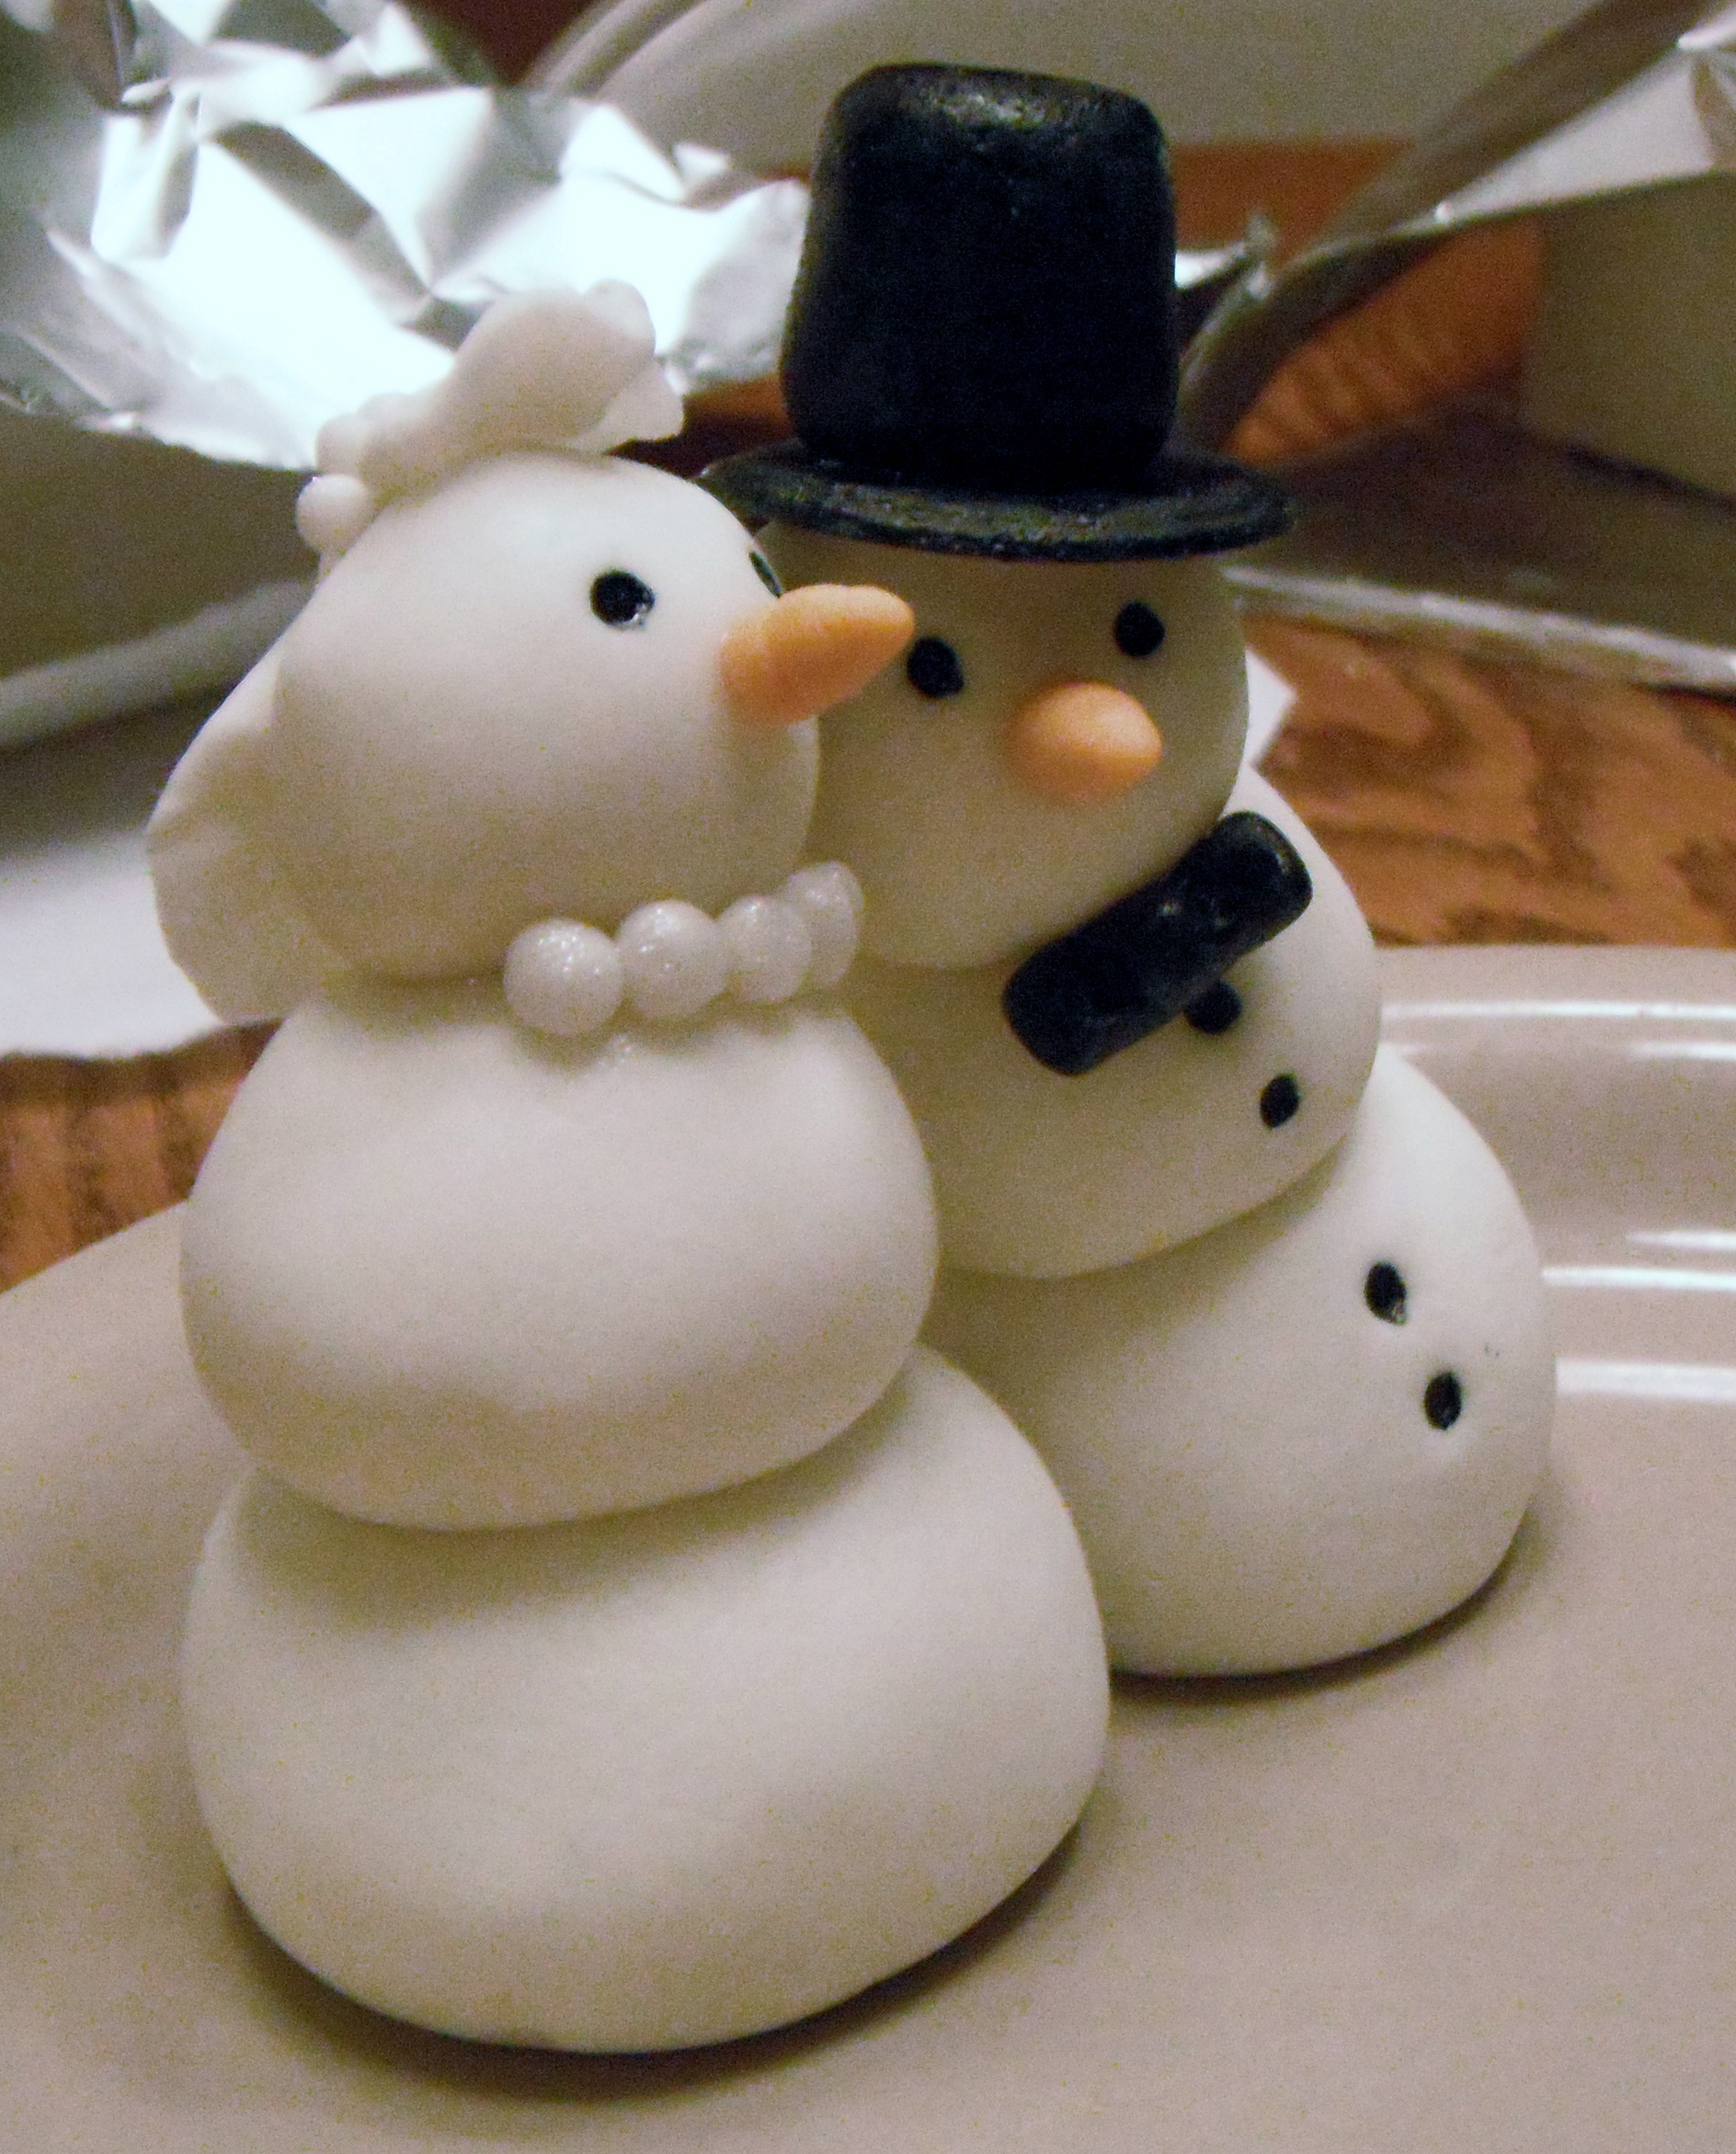 Snowman Decorated Cakes